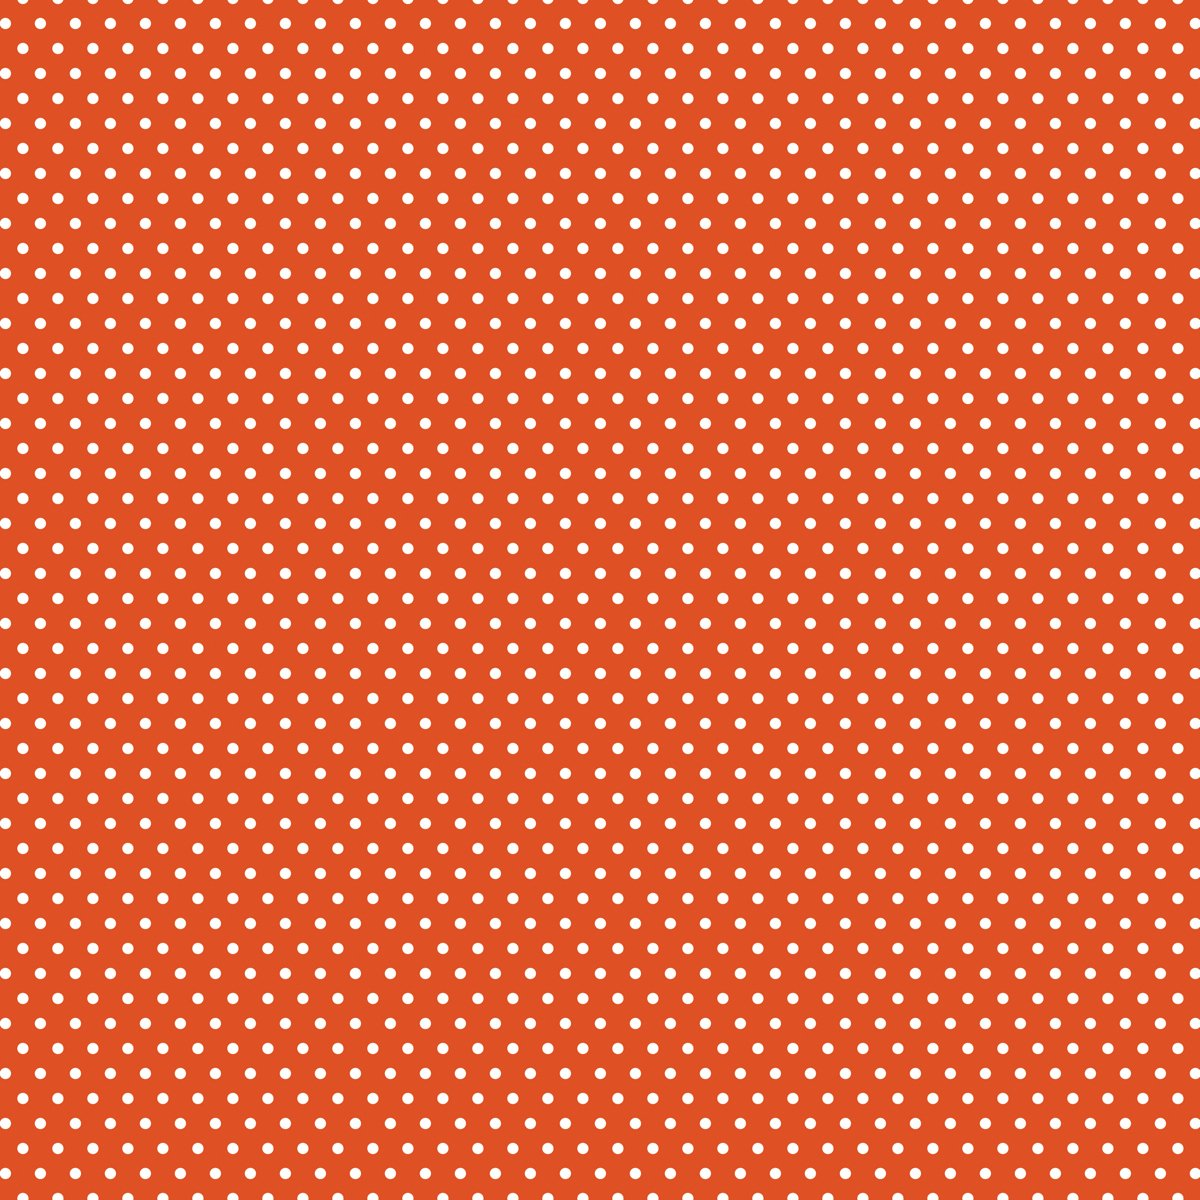 Core Basics Patterned Cardstock 12 X12 Inches Orange Small Dot (12 Pack)